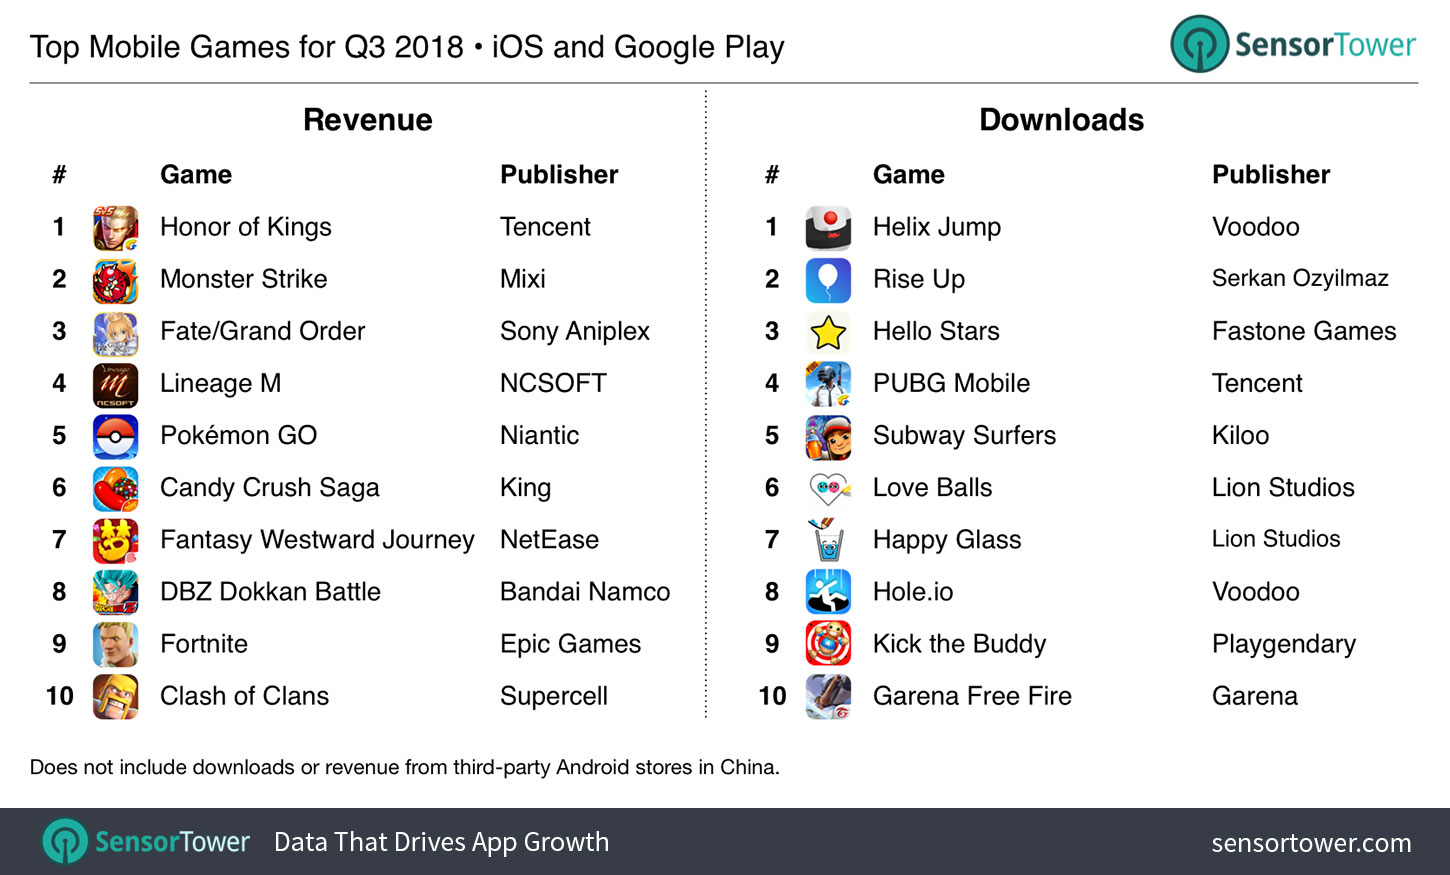 Q3 2018 Top Mobile Games by Revenue and Downloads